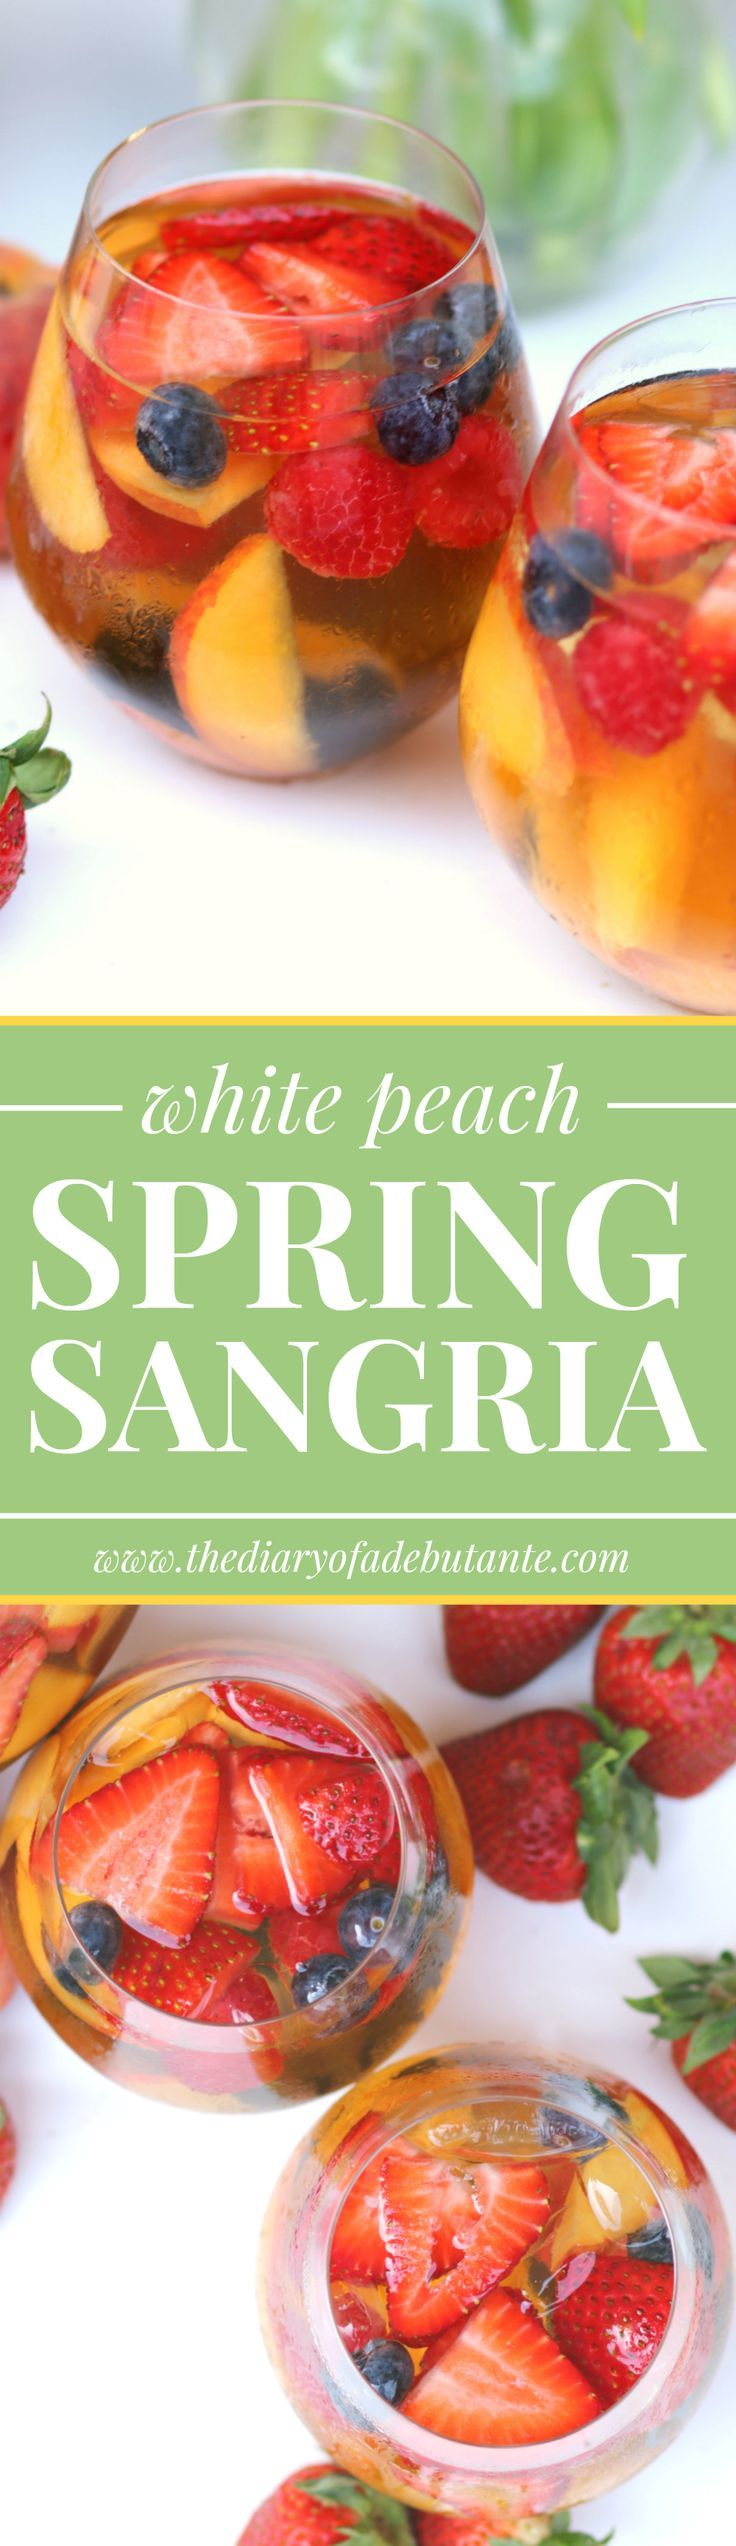 Delicious berry and white peach spring sangria with Wente Chardonnay and St. Germaine liqueur. Seriously so yummy!